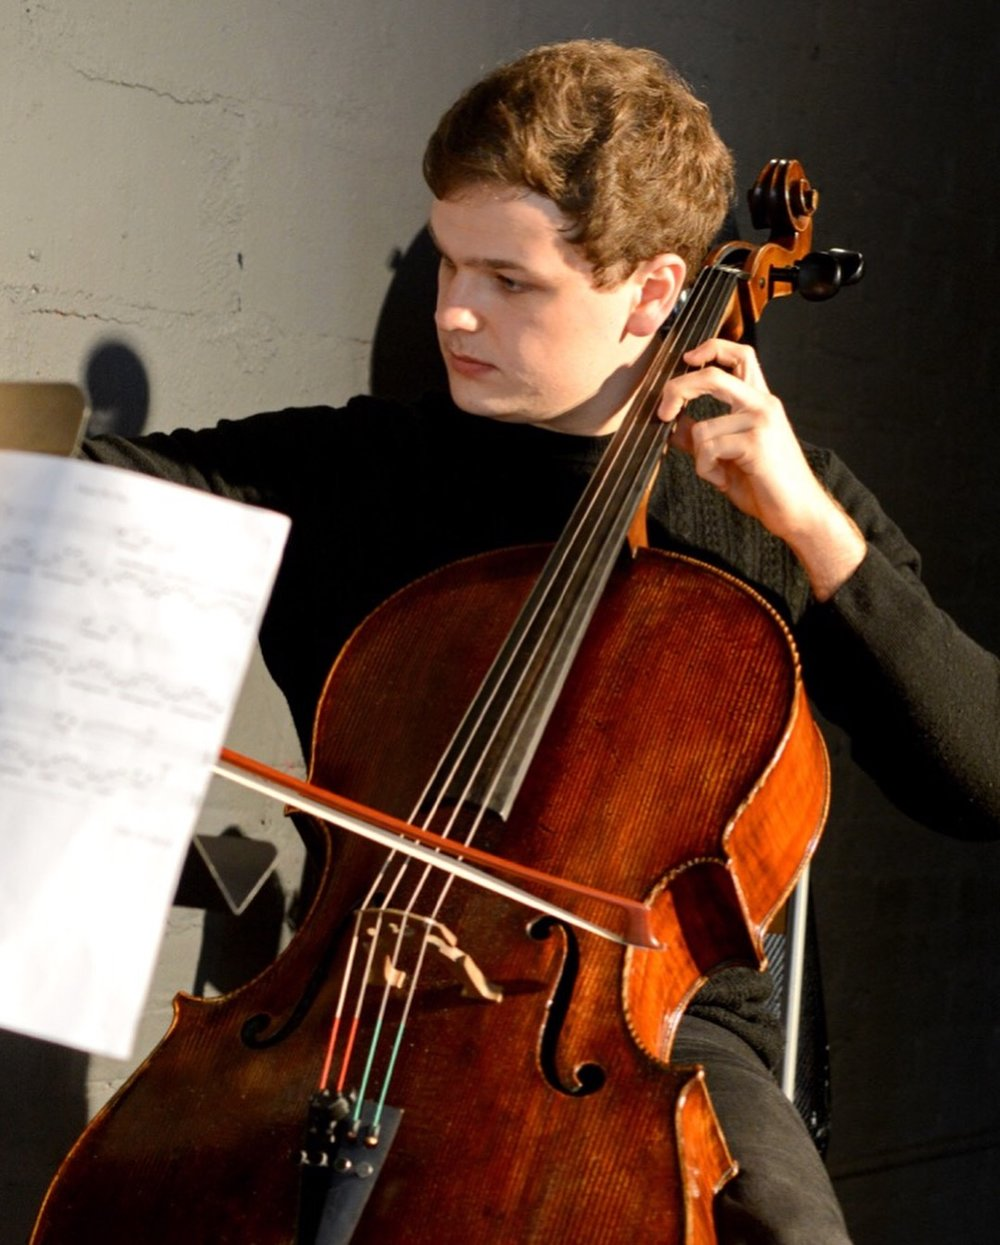 Nick Burkell, Cello